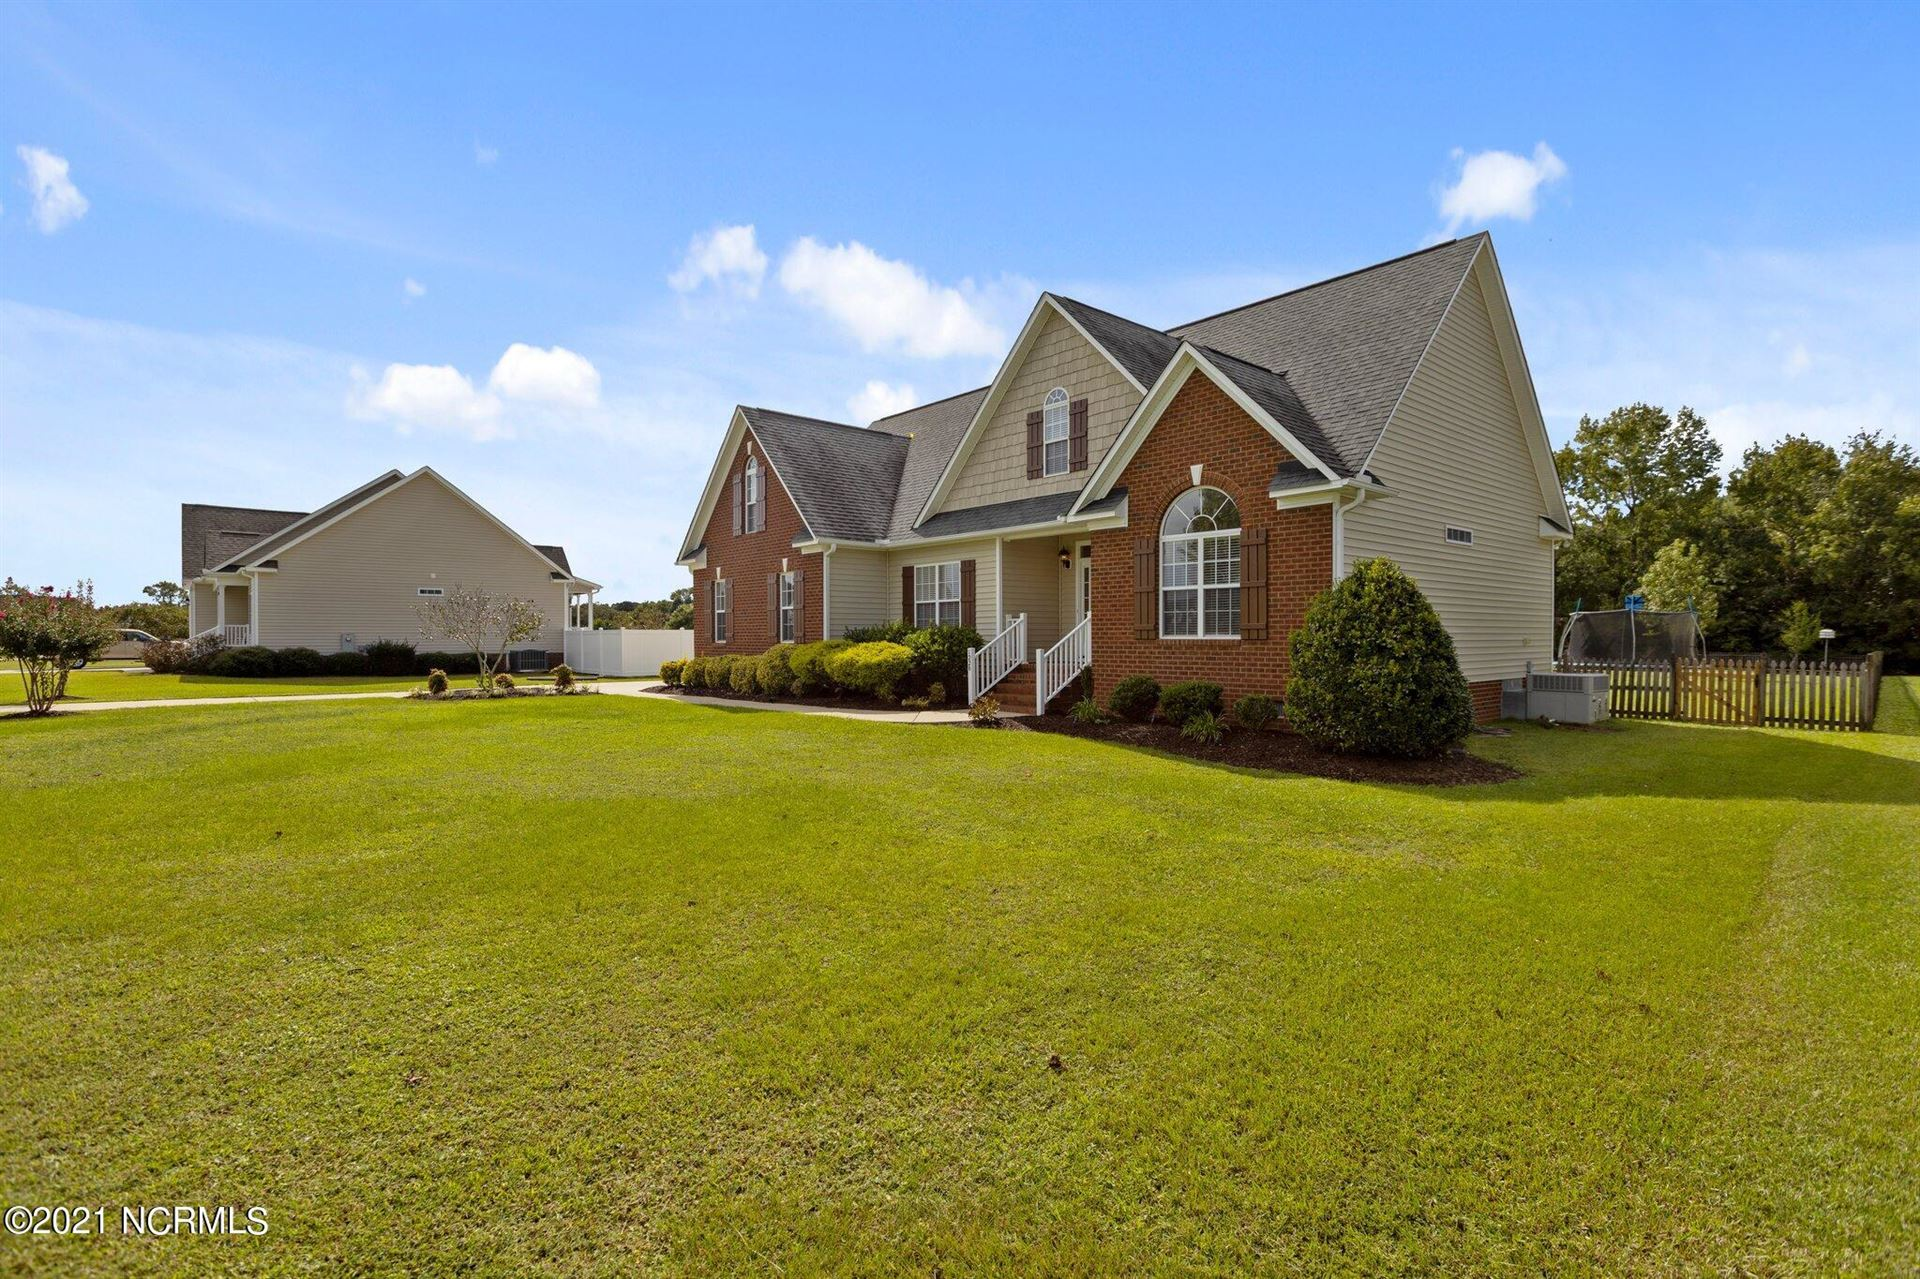 Photo of 1228 Windsong Drive, Greenville, NC 27858 (MLS # 100292295)